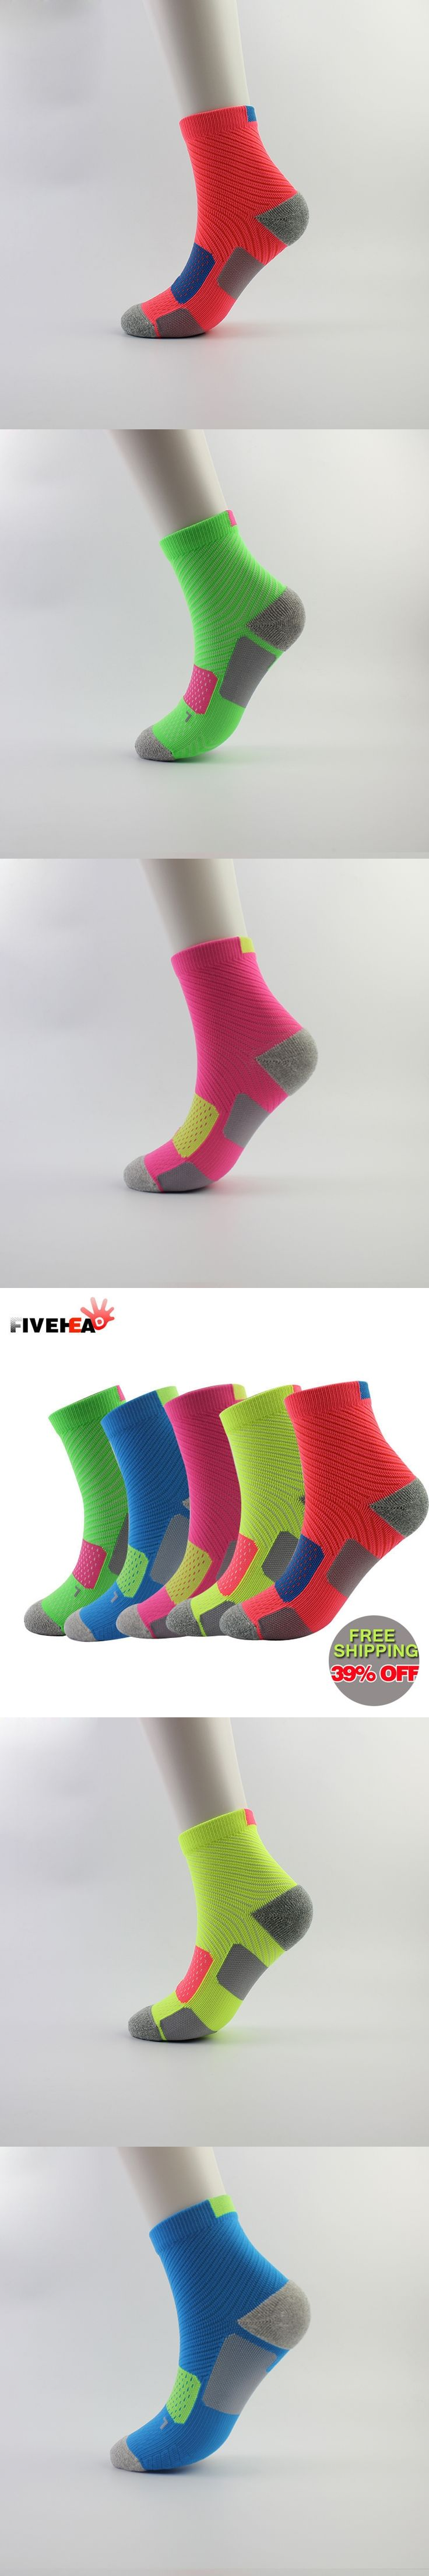 Badminton socks sweat breathable quick-drying men & women models tennis running  movement to ease fatigue pressure socks